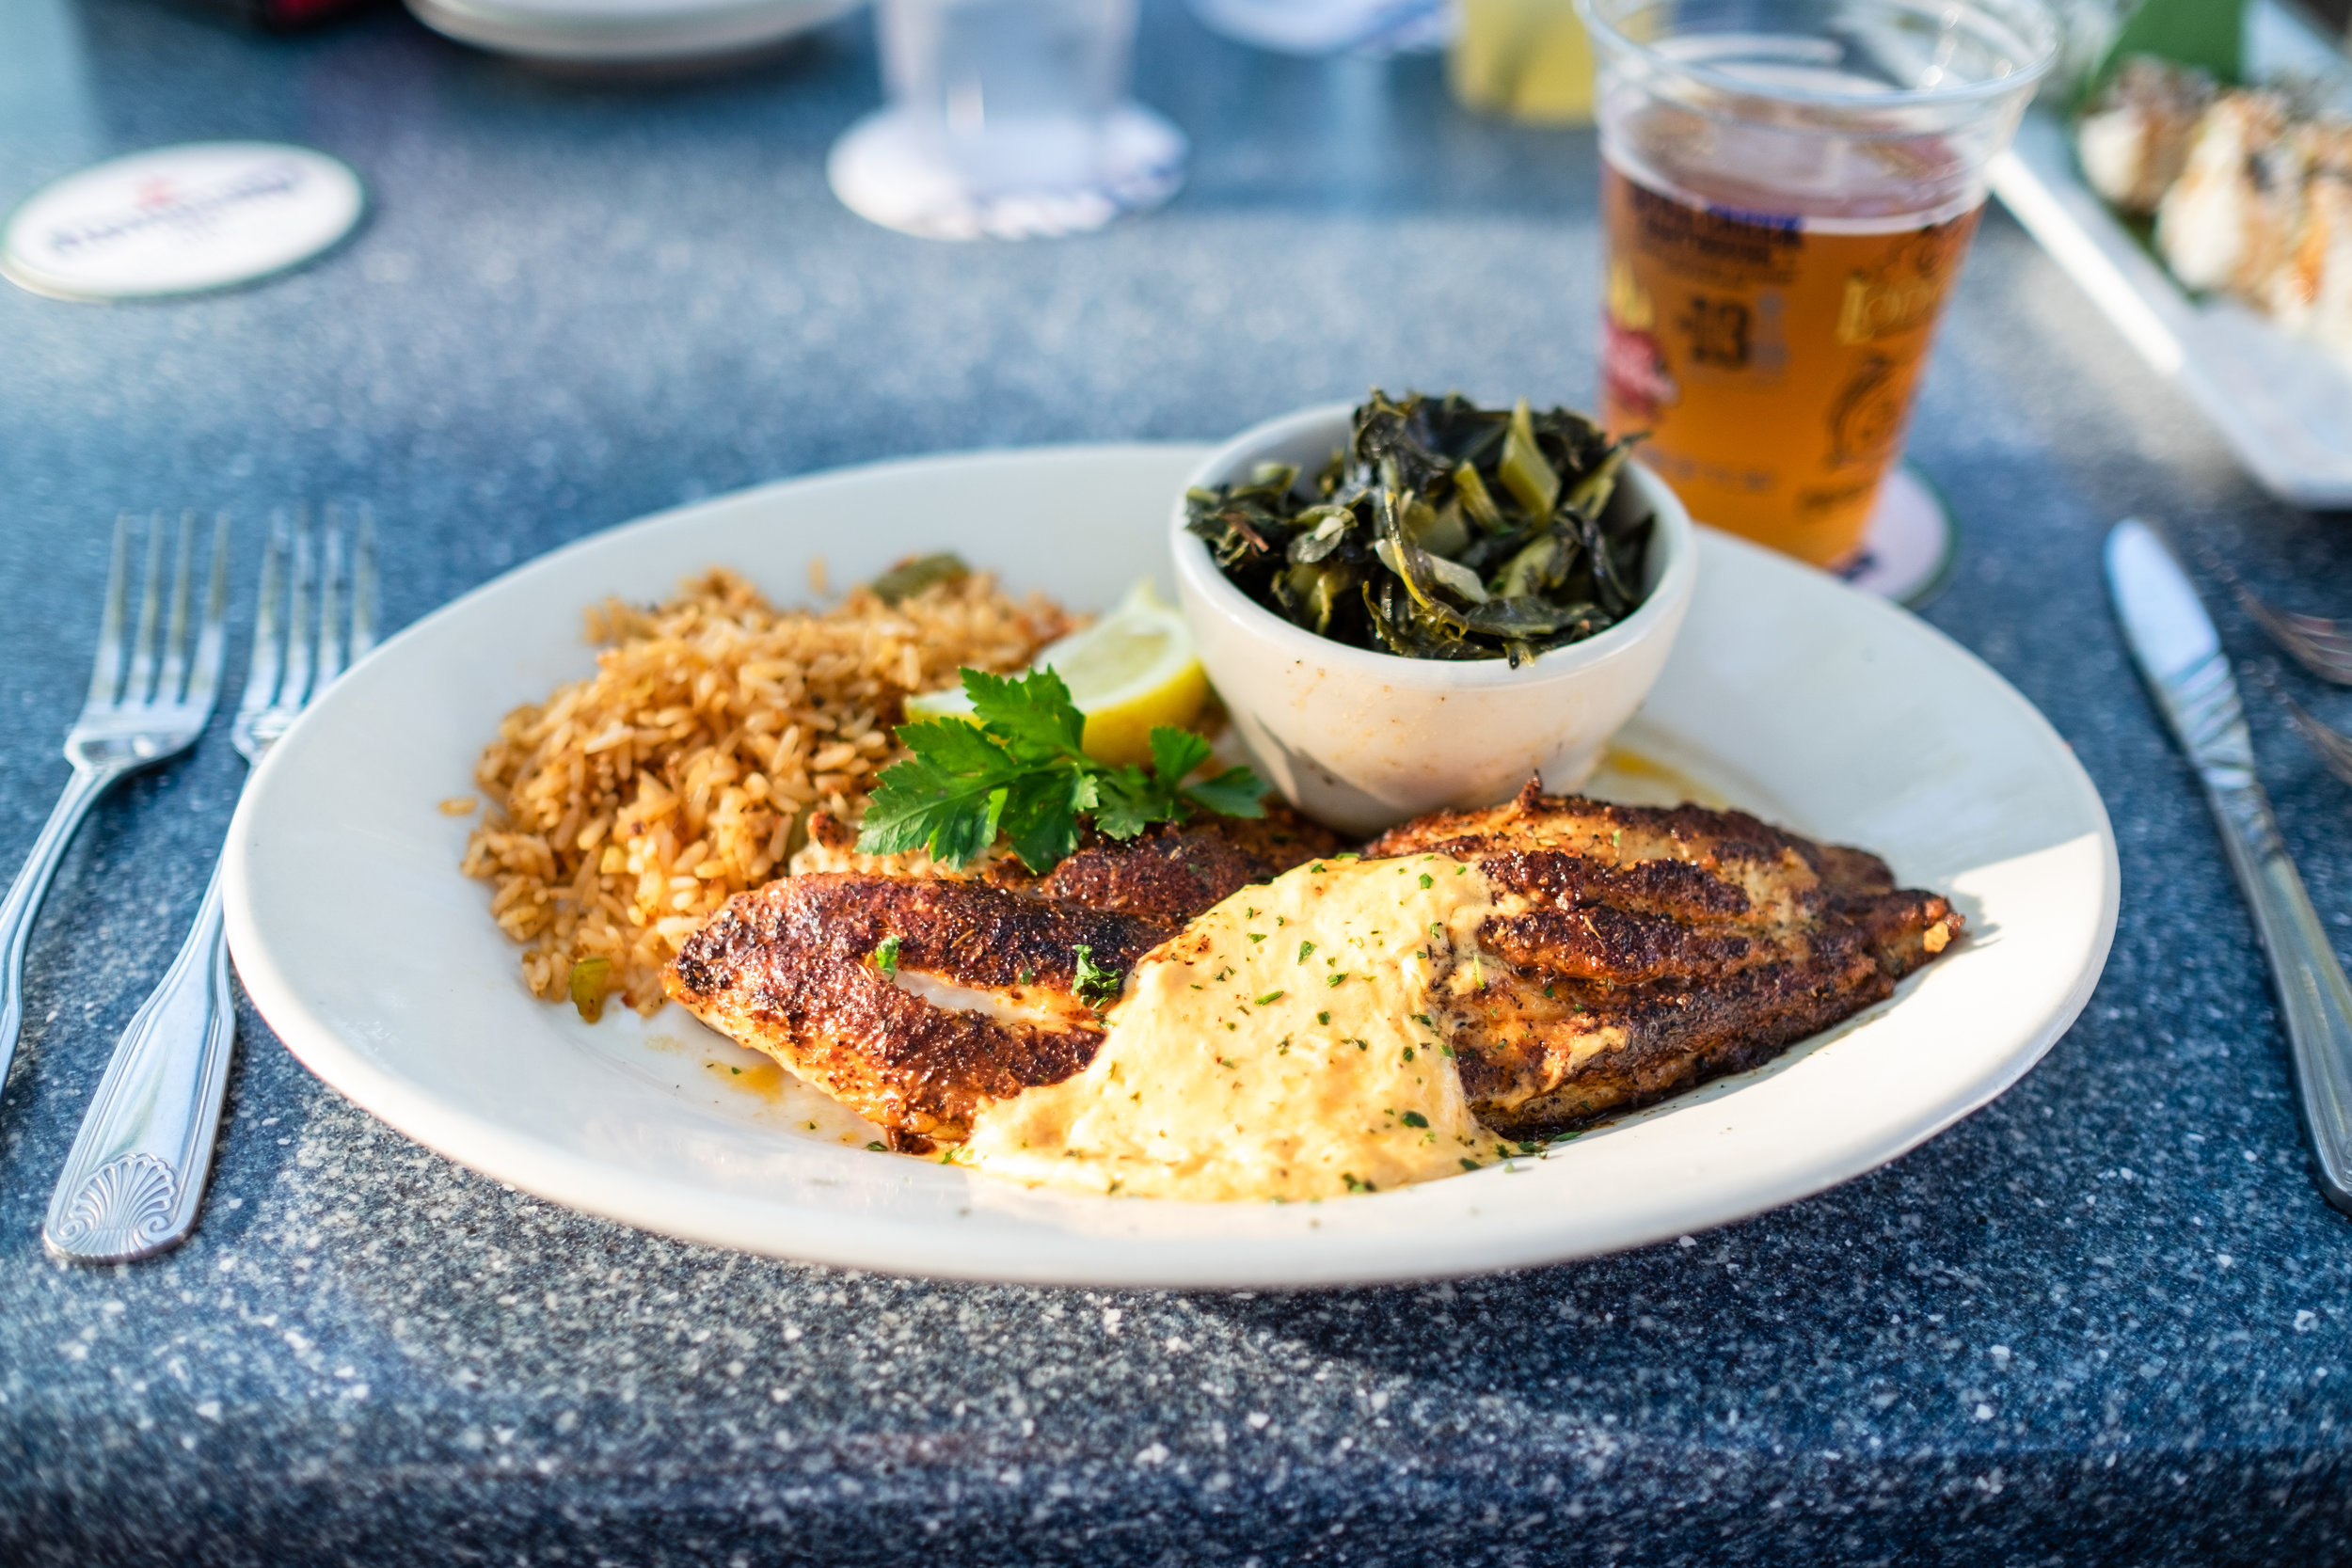 The Blackened Carolina Catfish was literally the BEST food I had during our entire 40 day road trip.